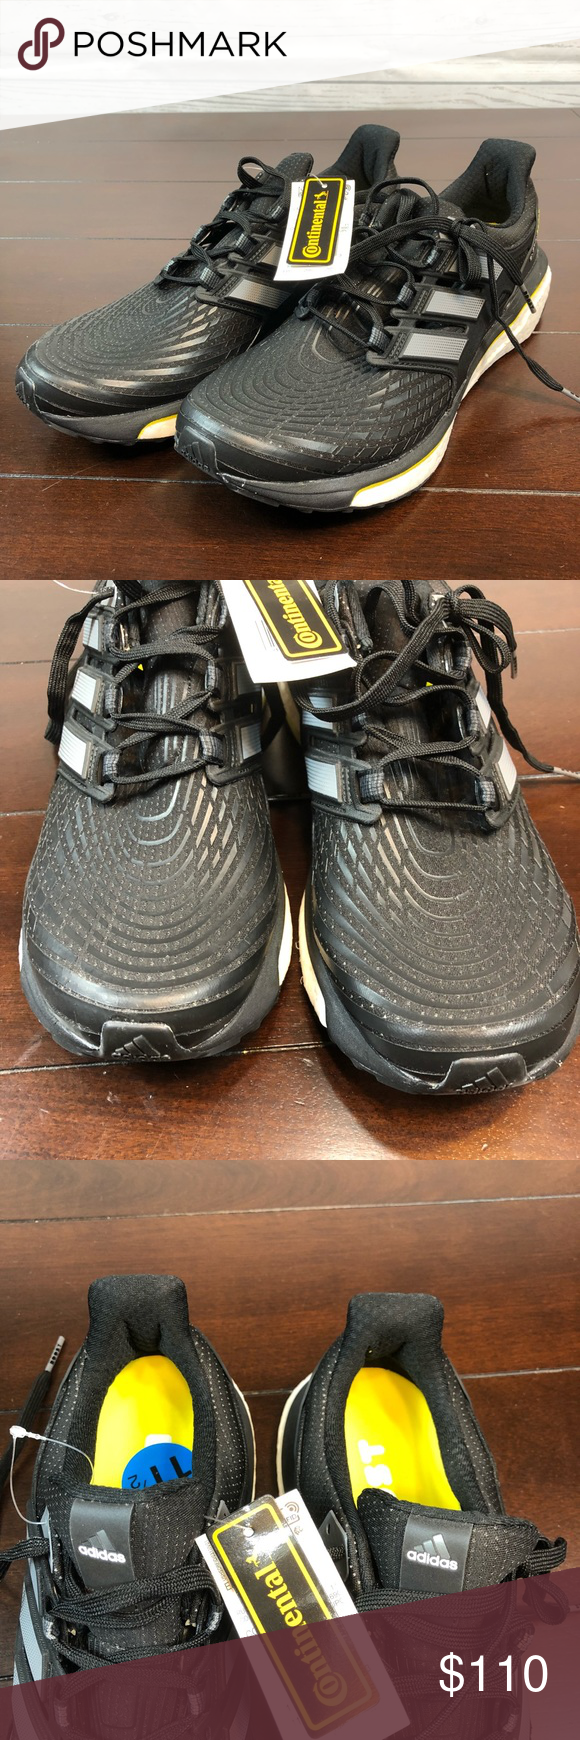 a9fe9c9e4 NEW Mens Adidas Energy Boost Running Shoes 11.5 NEW Mens Adidas Energy  Boost Running Shoes Black White CQ1762 Size 11.5 No box Brand new with tags  adidas ...